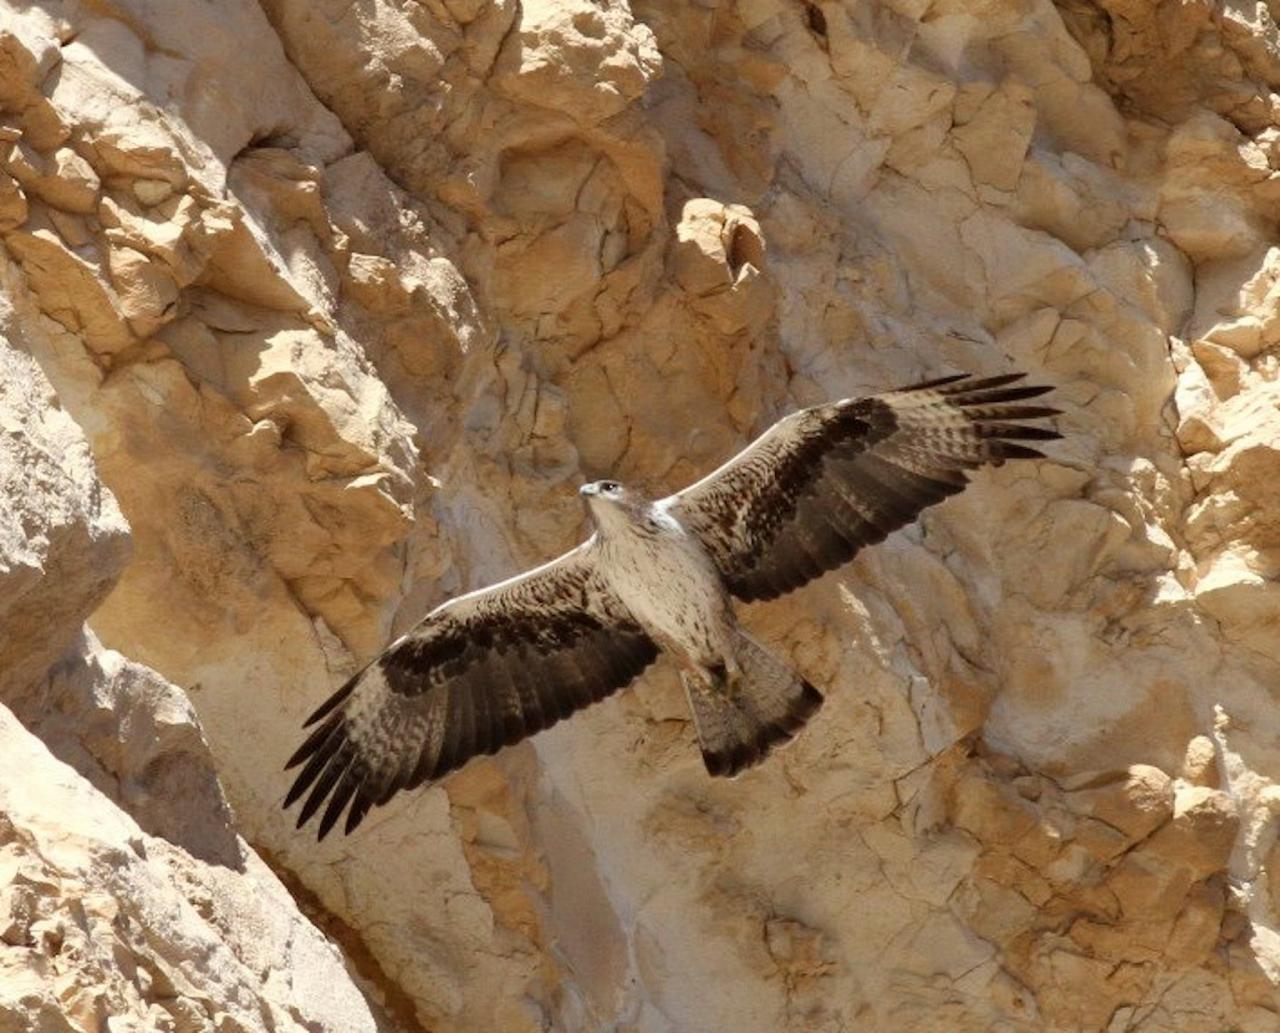 Bonelli's Eagle, Israel Birding Tour, Israel Nature Tour, Israel, Naturalist Journeys, Middle East Birding